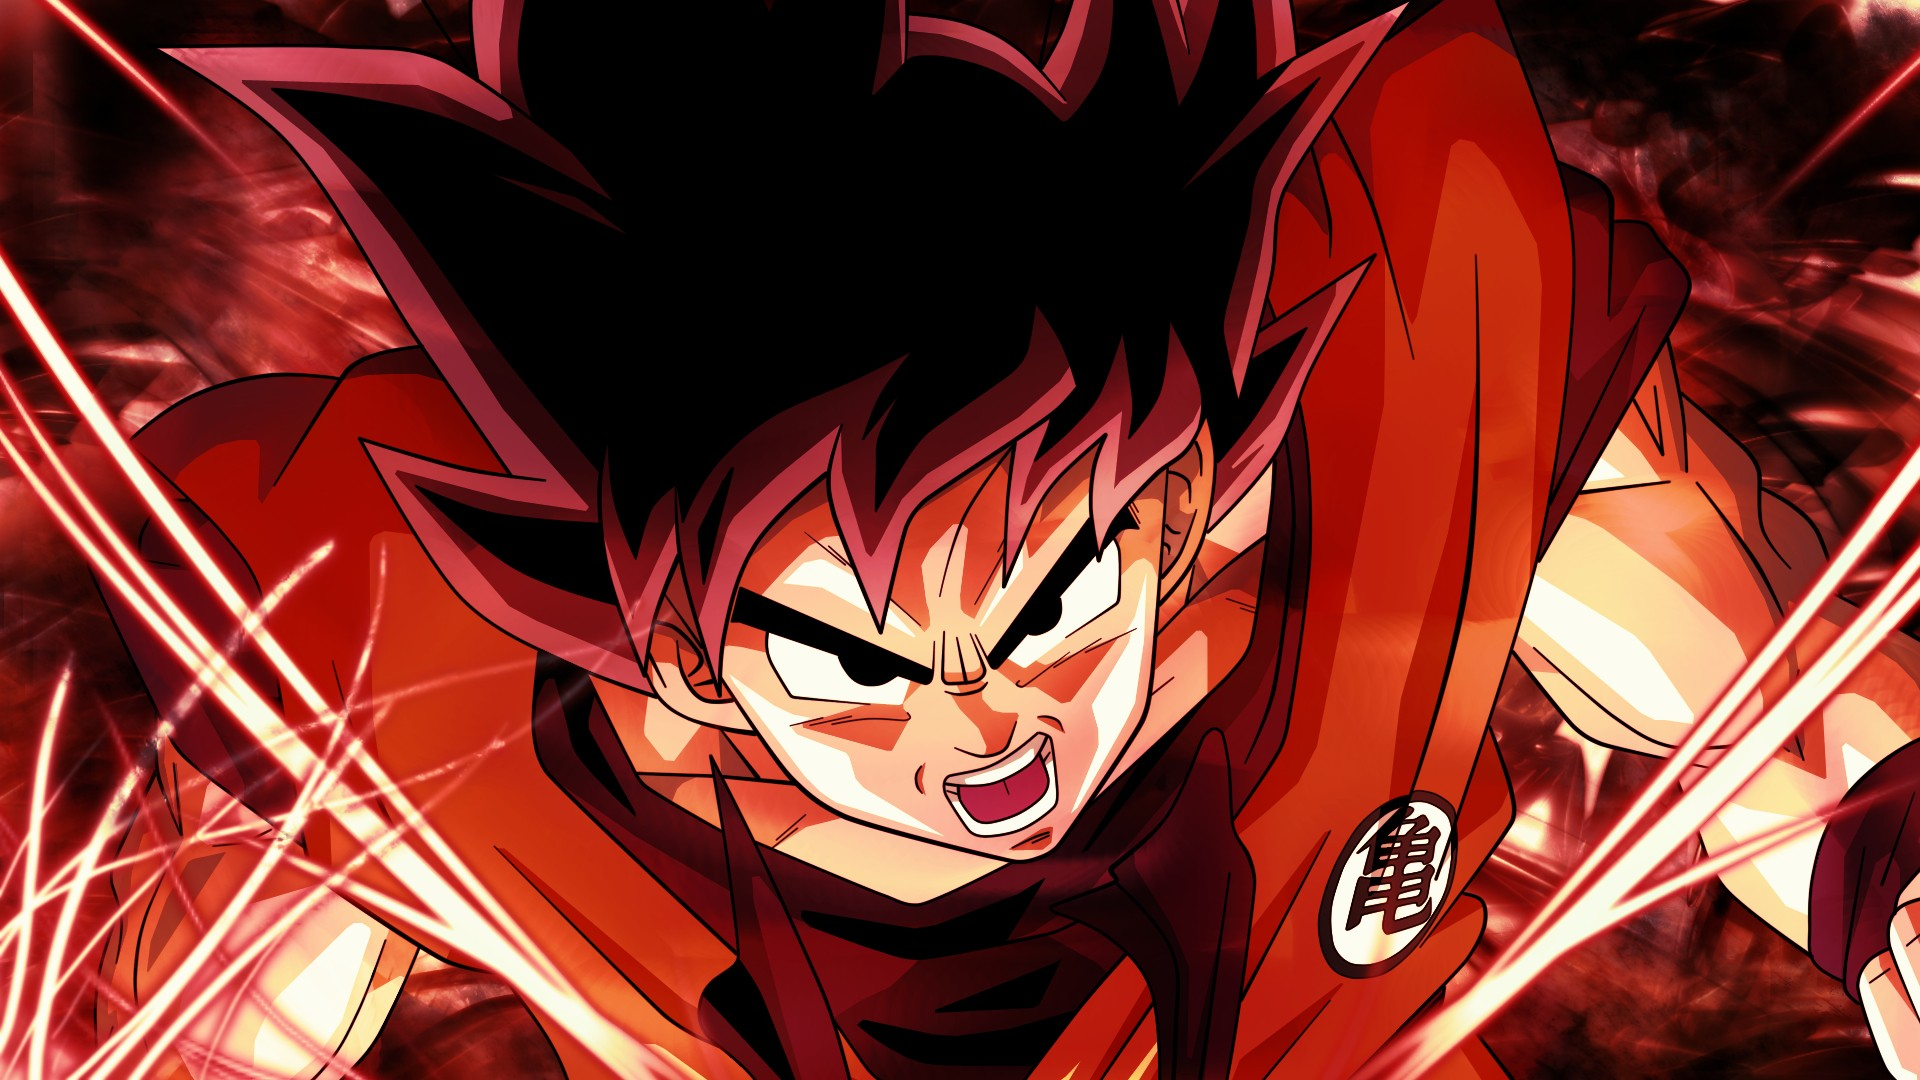 goku wallpaper ·① download free awesome full hd backgrounds for